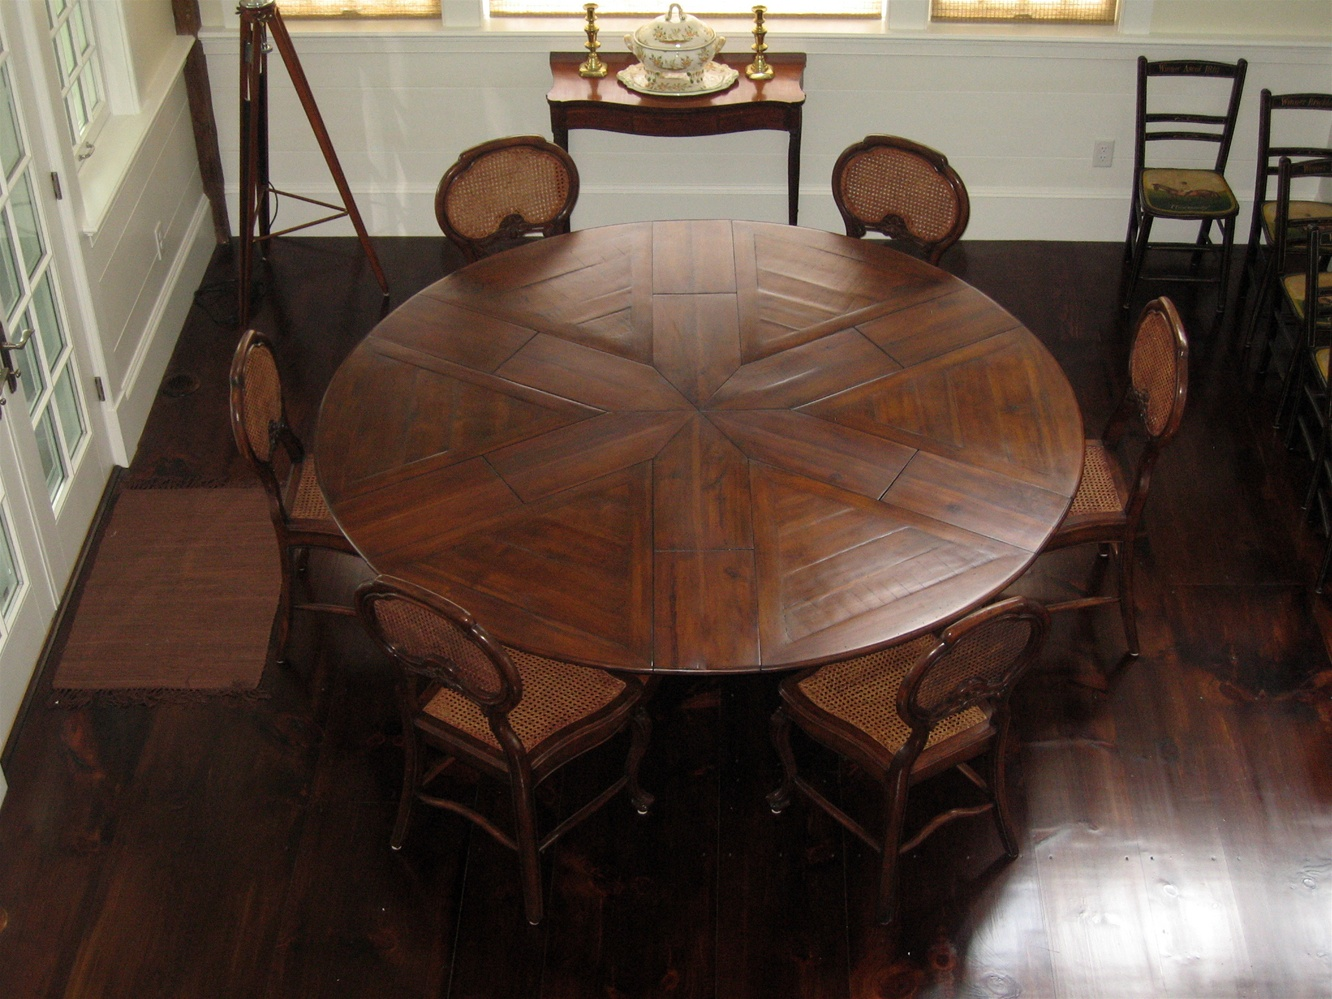 Luxury furniture solid walnut Jupe Dining Table Greenwich, RI.